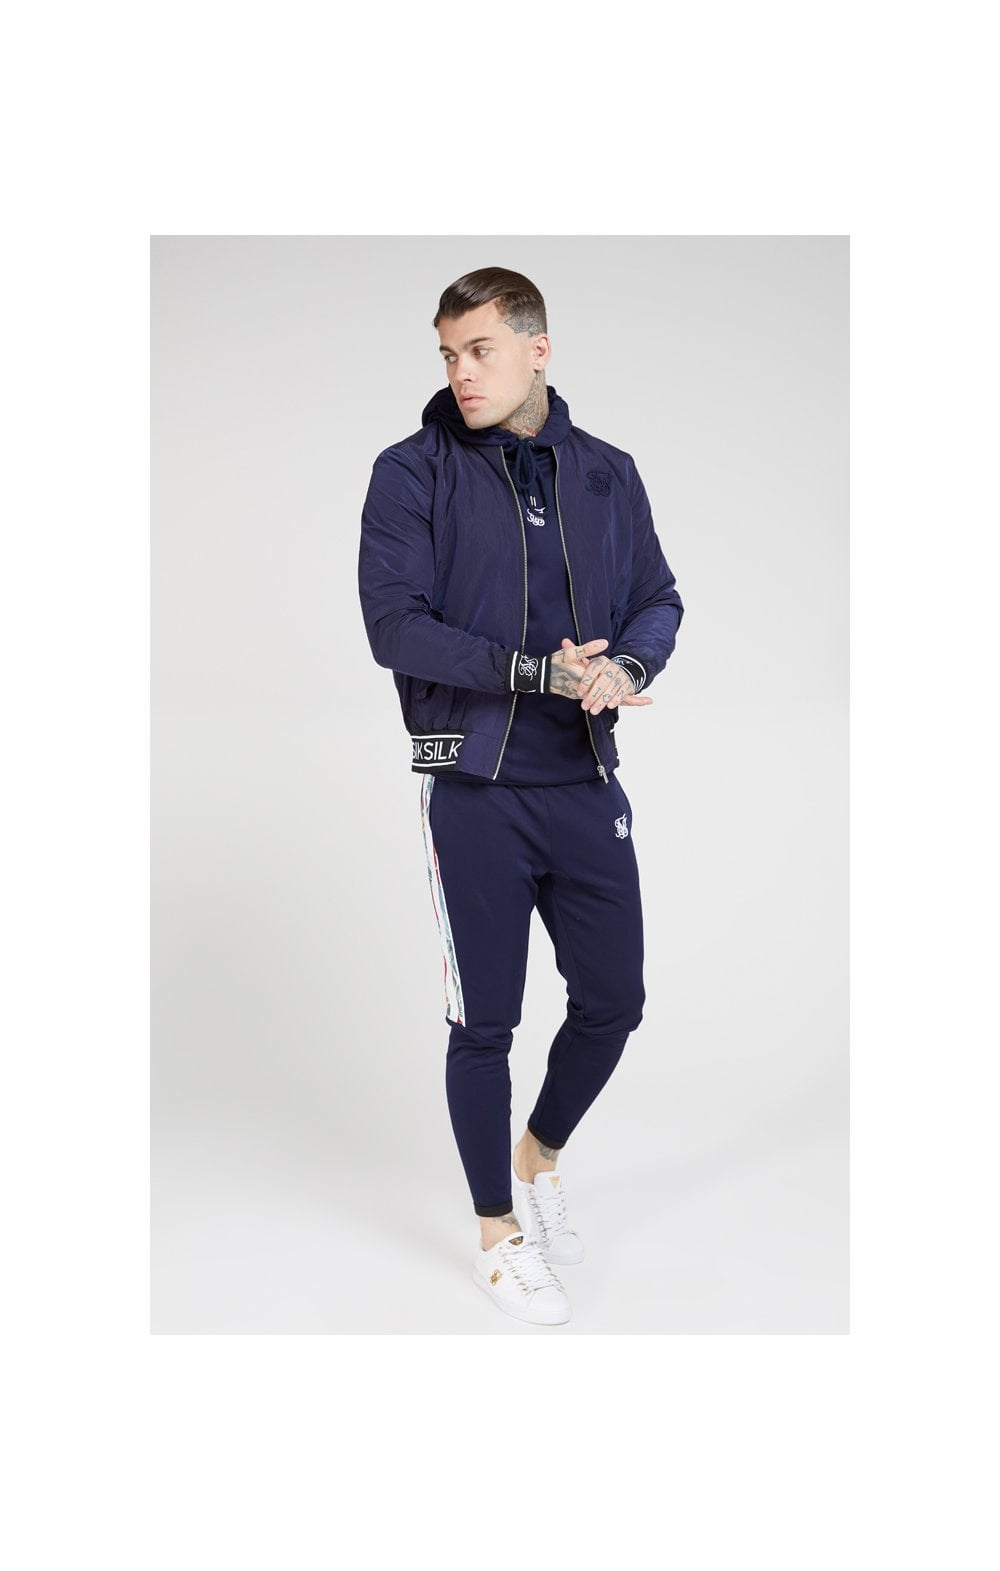 SikSilk Nylon Bomber Jacket – Navy (2)